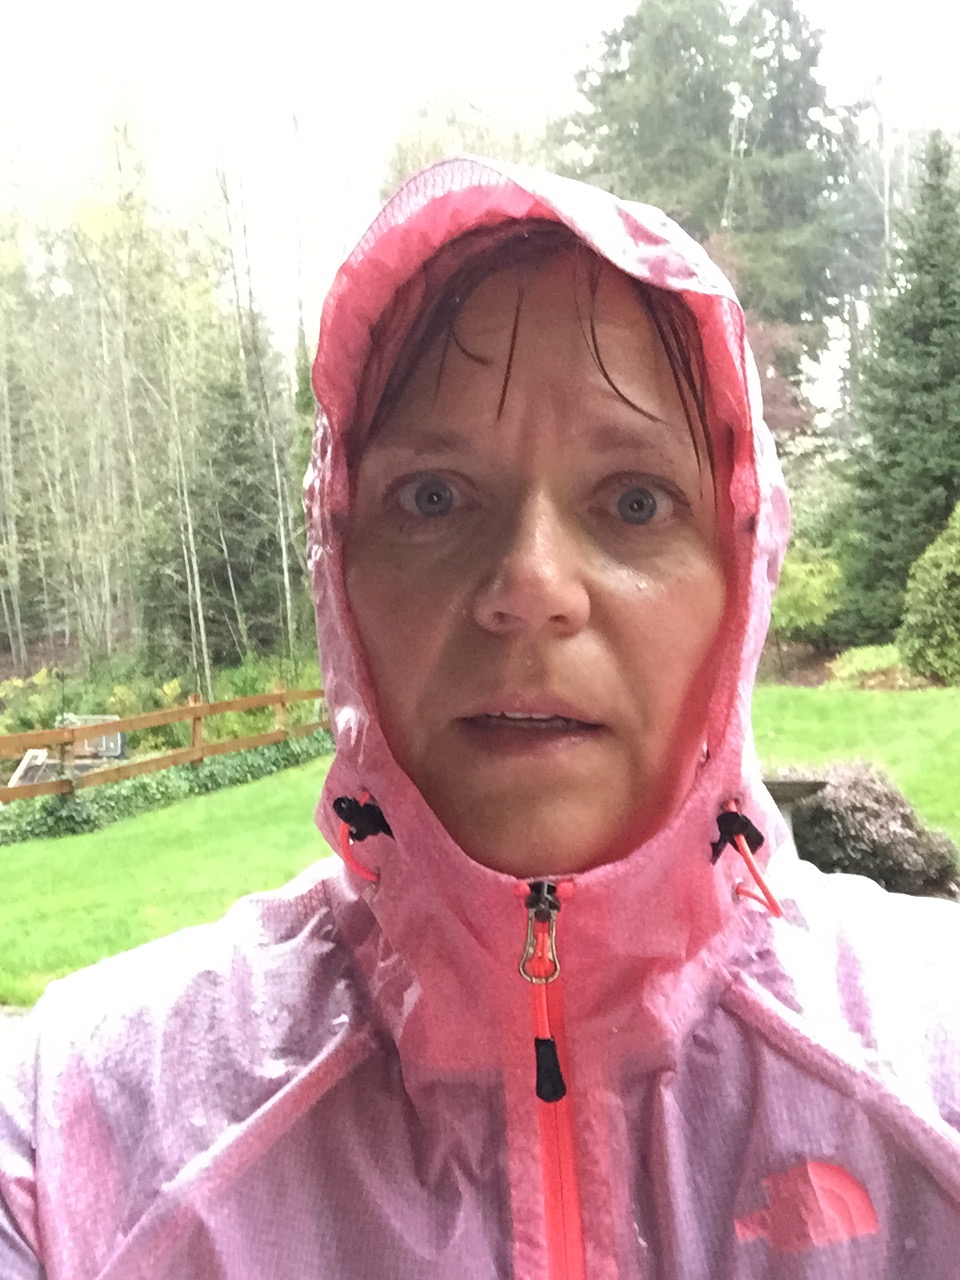 Doreen ran in a thunder, lightening and hail storm. The only thing missing is a hurricane. (She ran in a tornado watch at Disney World--very unknowingly.